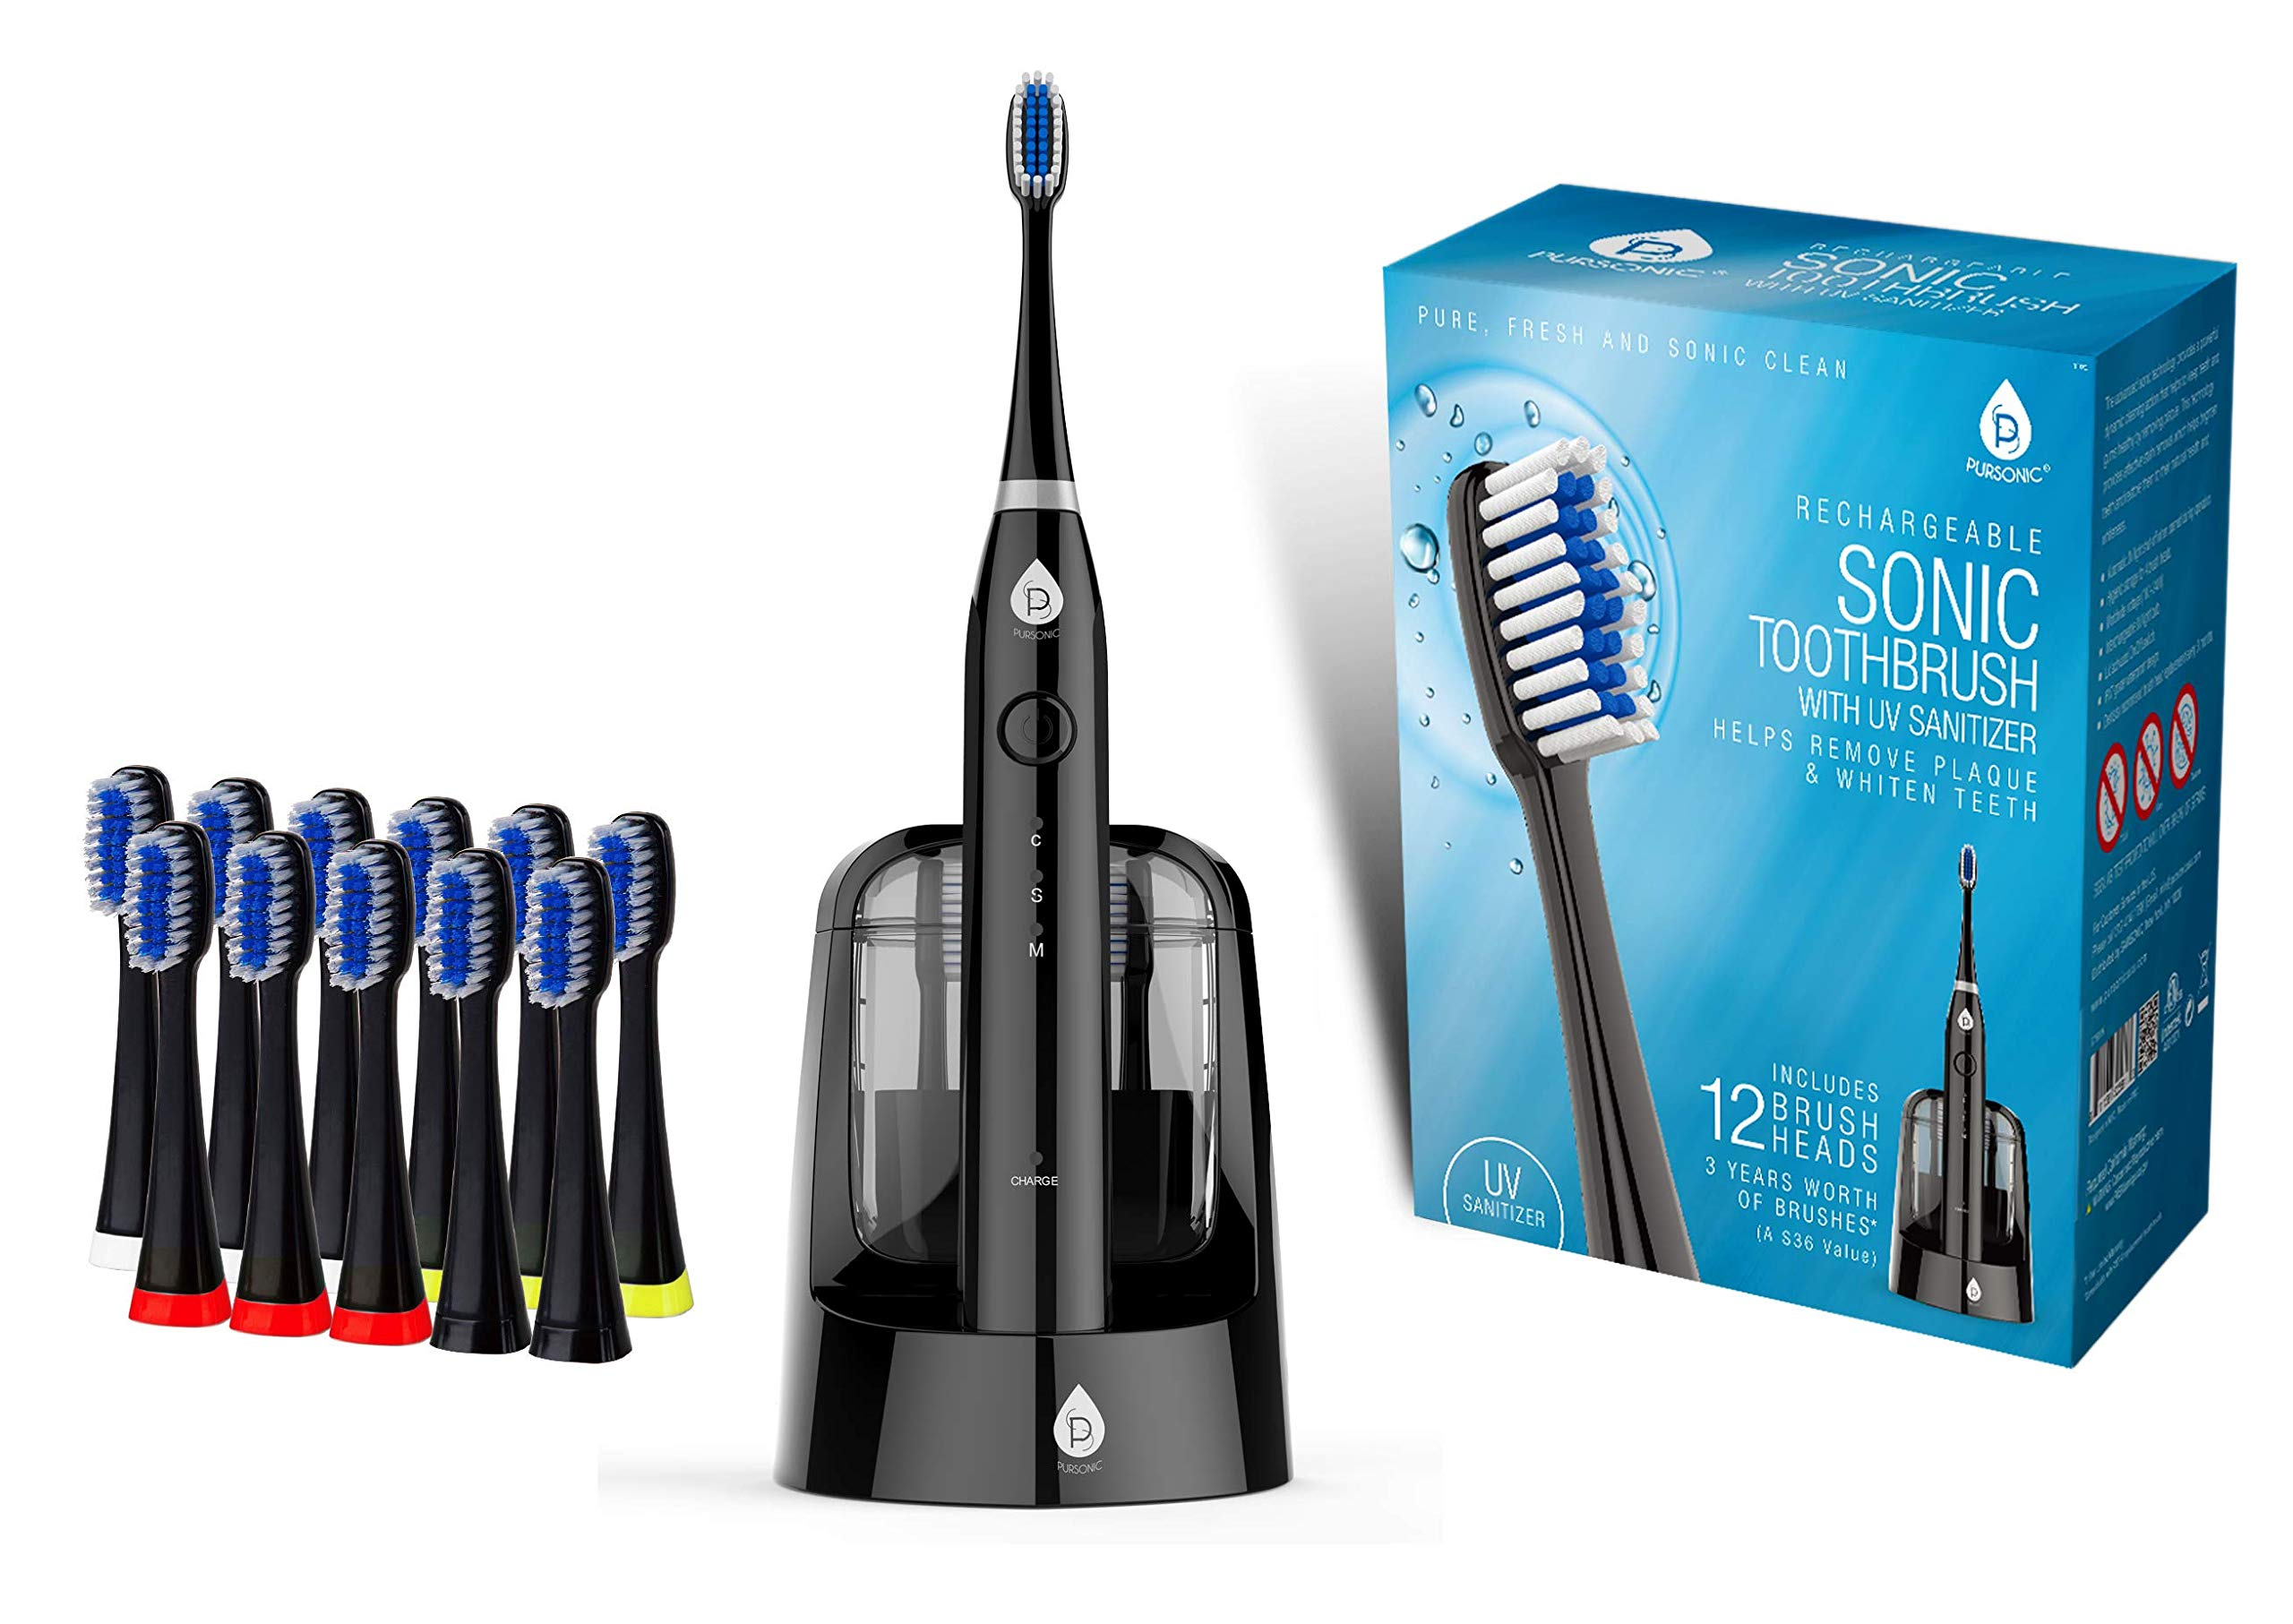 Pursonic S750 Sonic SmartSeries Electronic Power Rechargeable Battery Toothbrush with UV Sanitizing Function, Black, Includes 12 Brush Heads